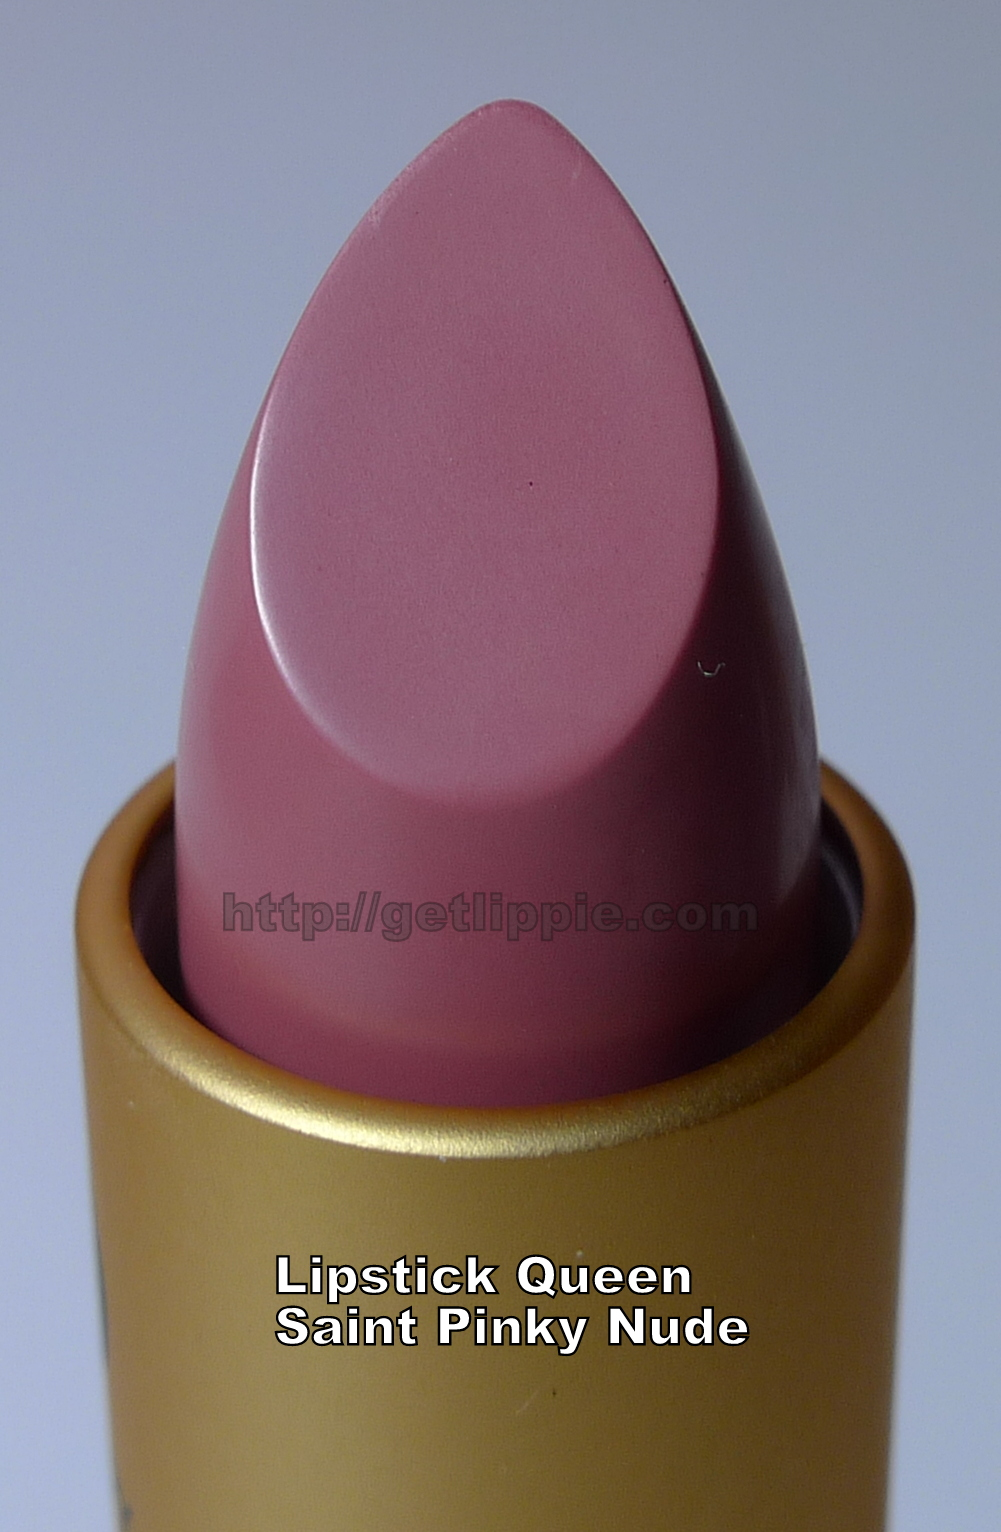 Lipstick Queen The Pretty Pair: Saint Pinky Nude